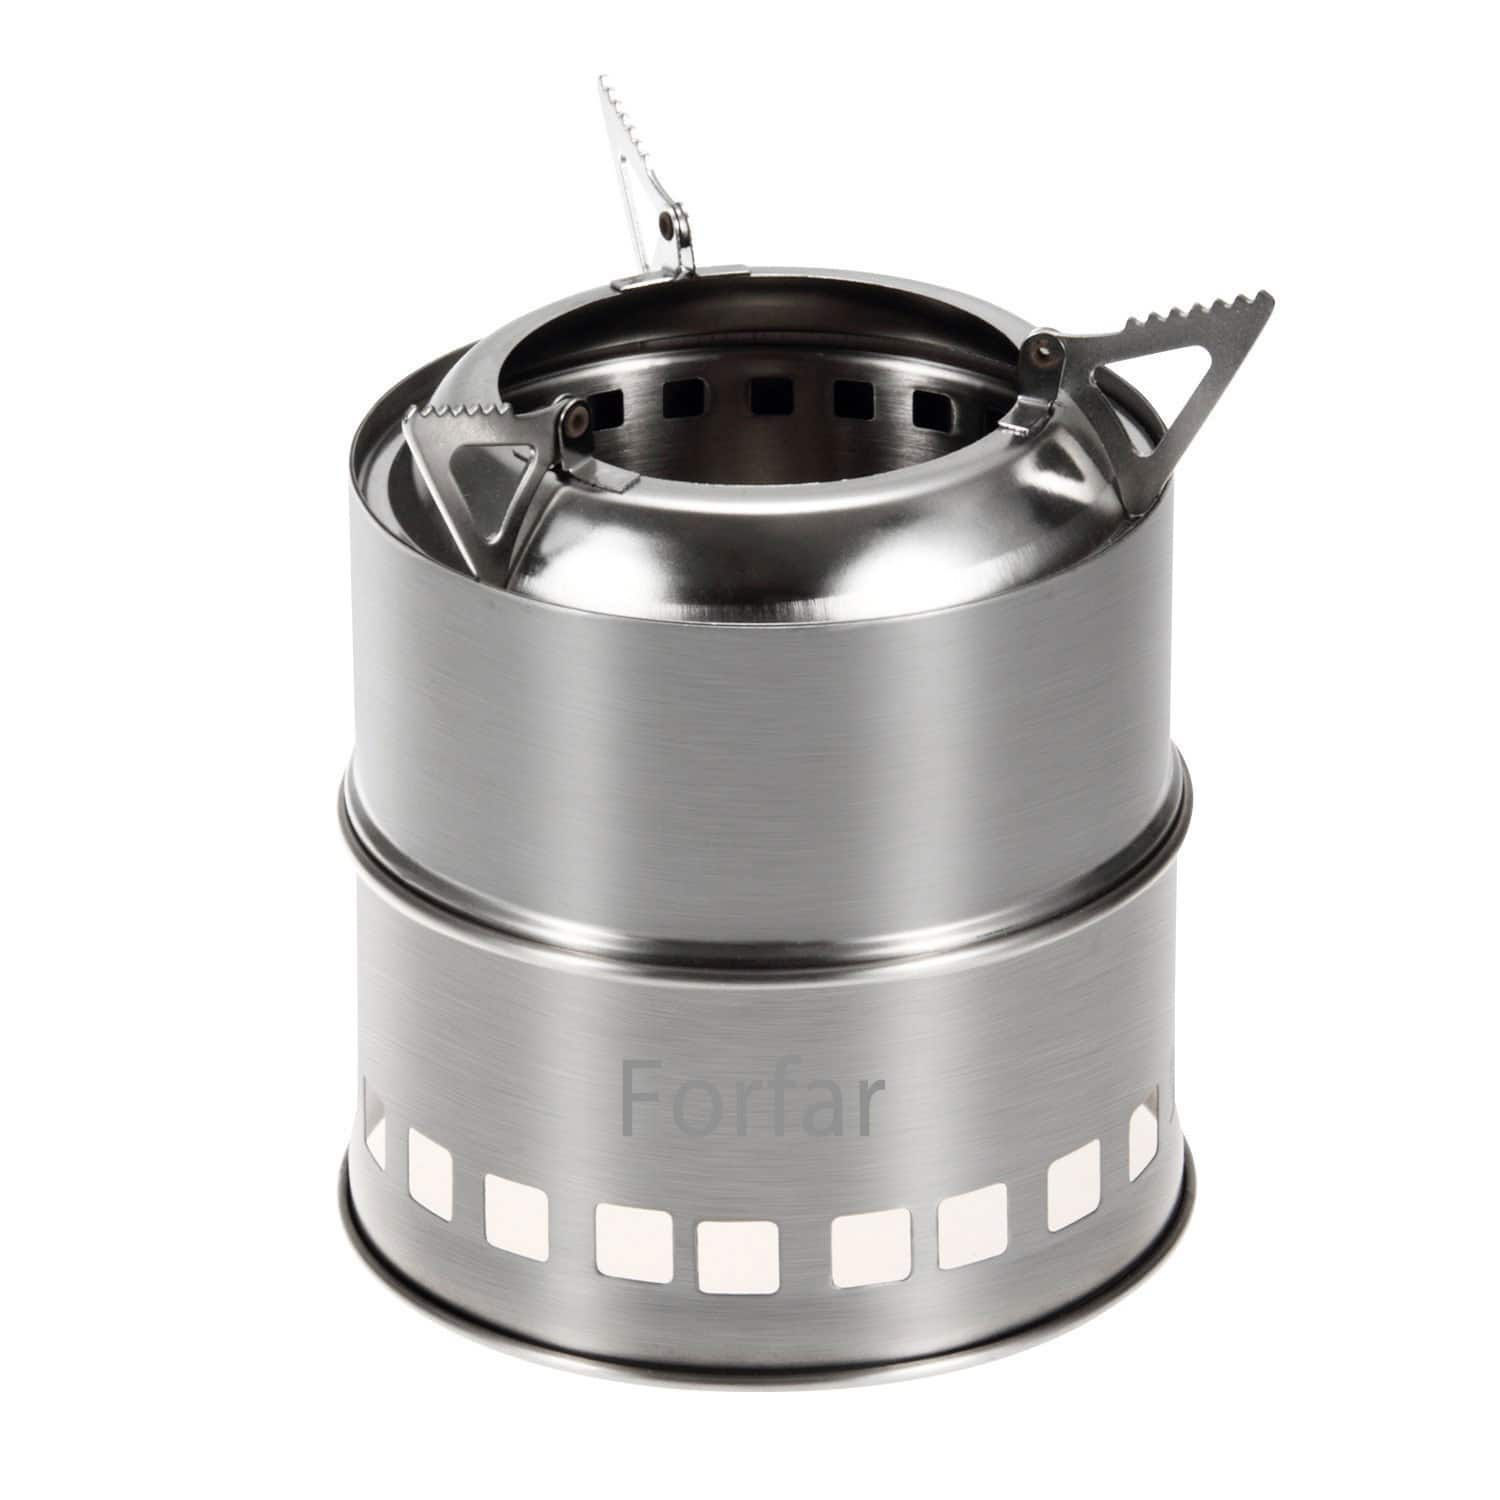 Portable Stainless Steel Camping Stove $15 + FSSS